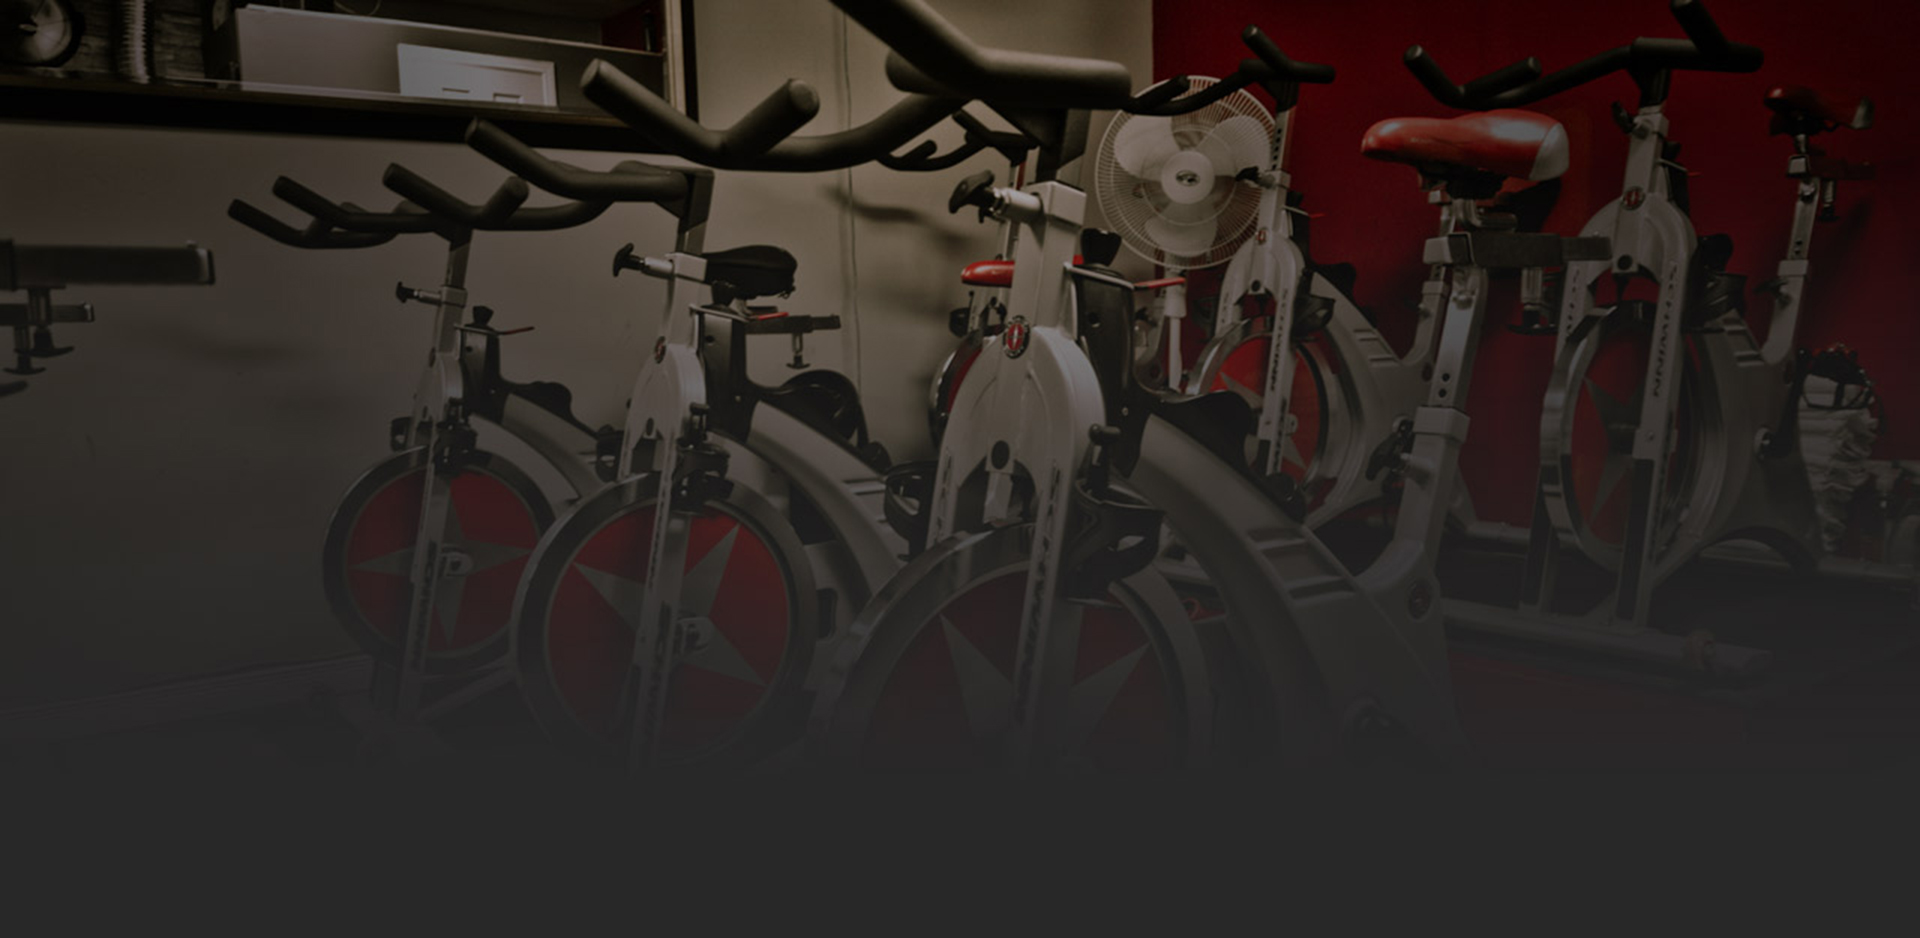 Legacy Indoor Cycling Legacy Indoor Cycling Studio Indoor Cycling